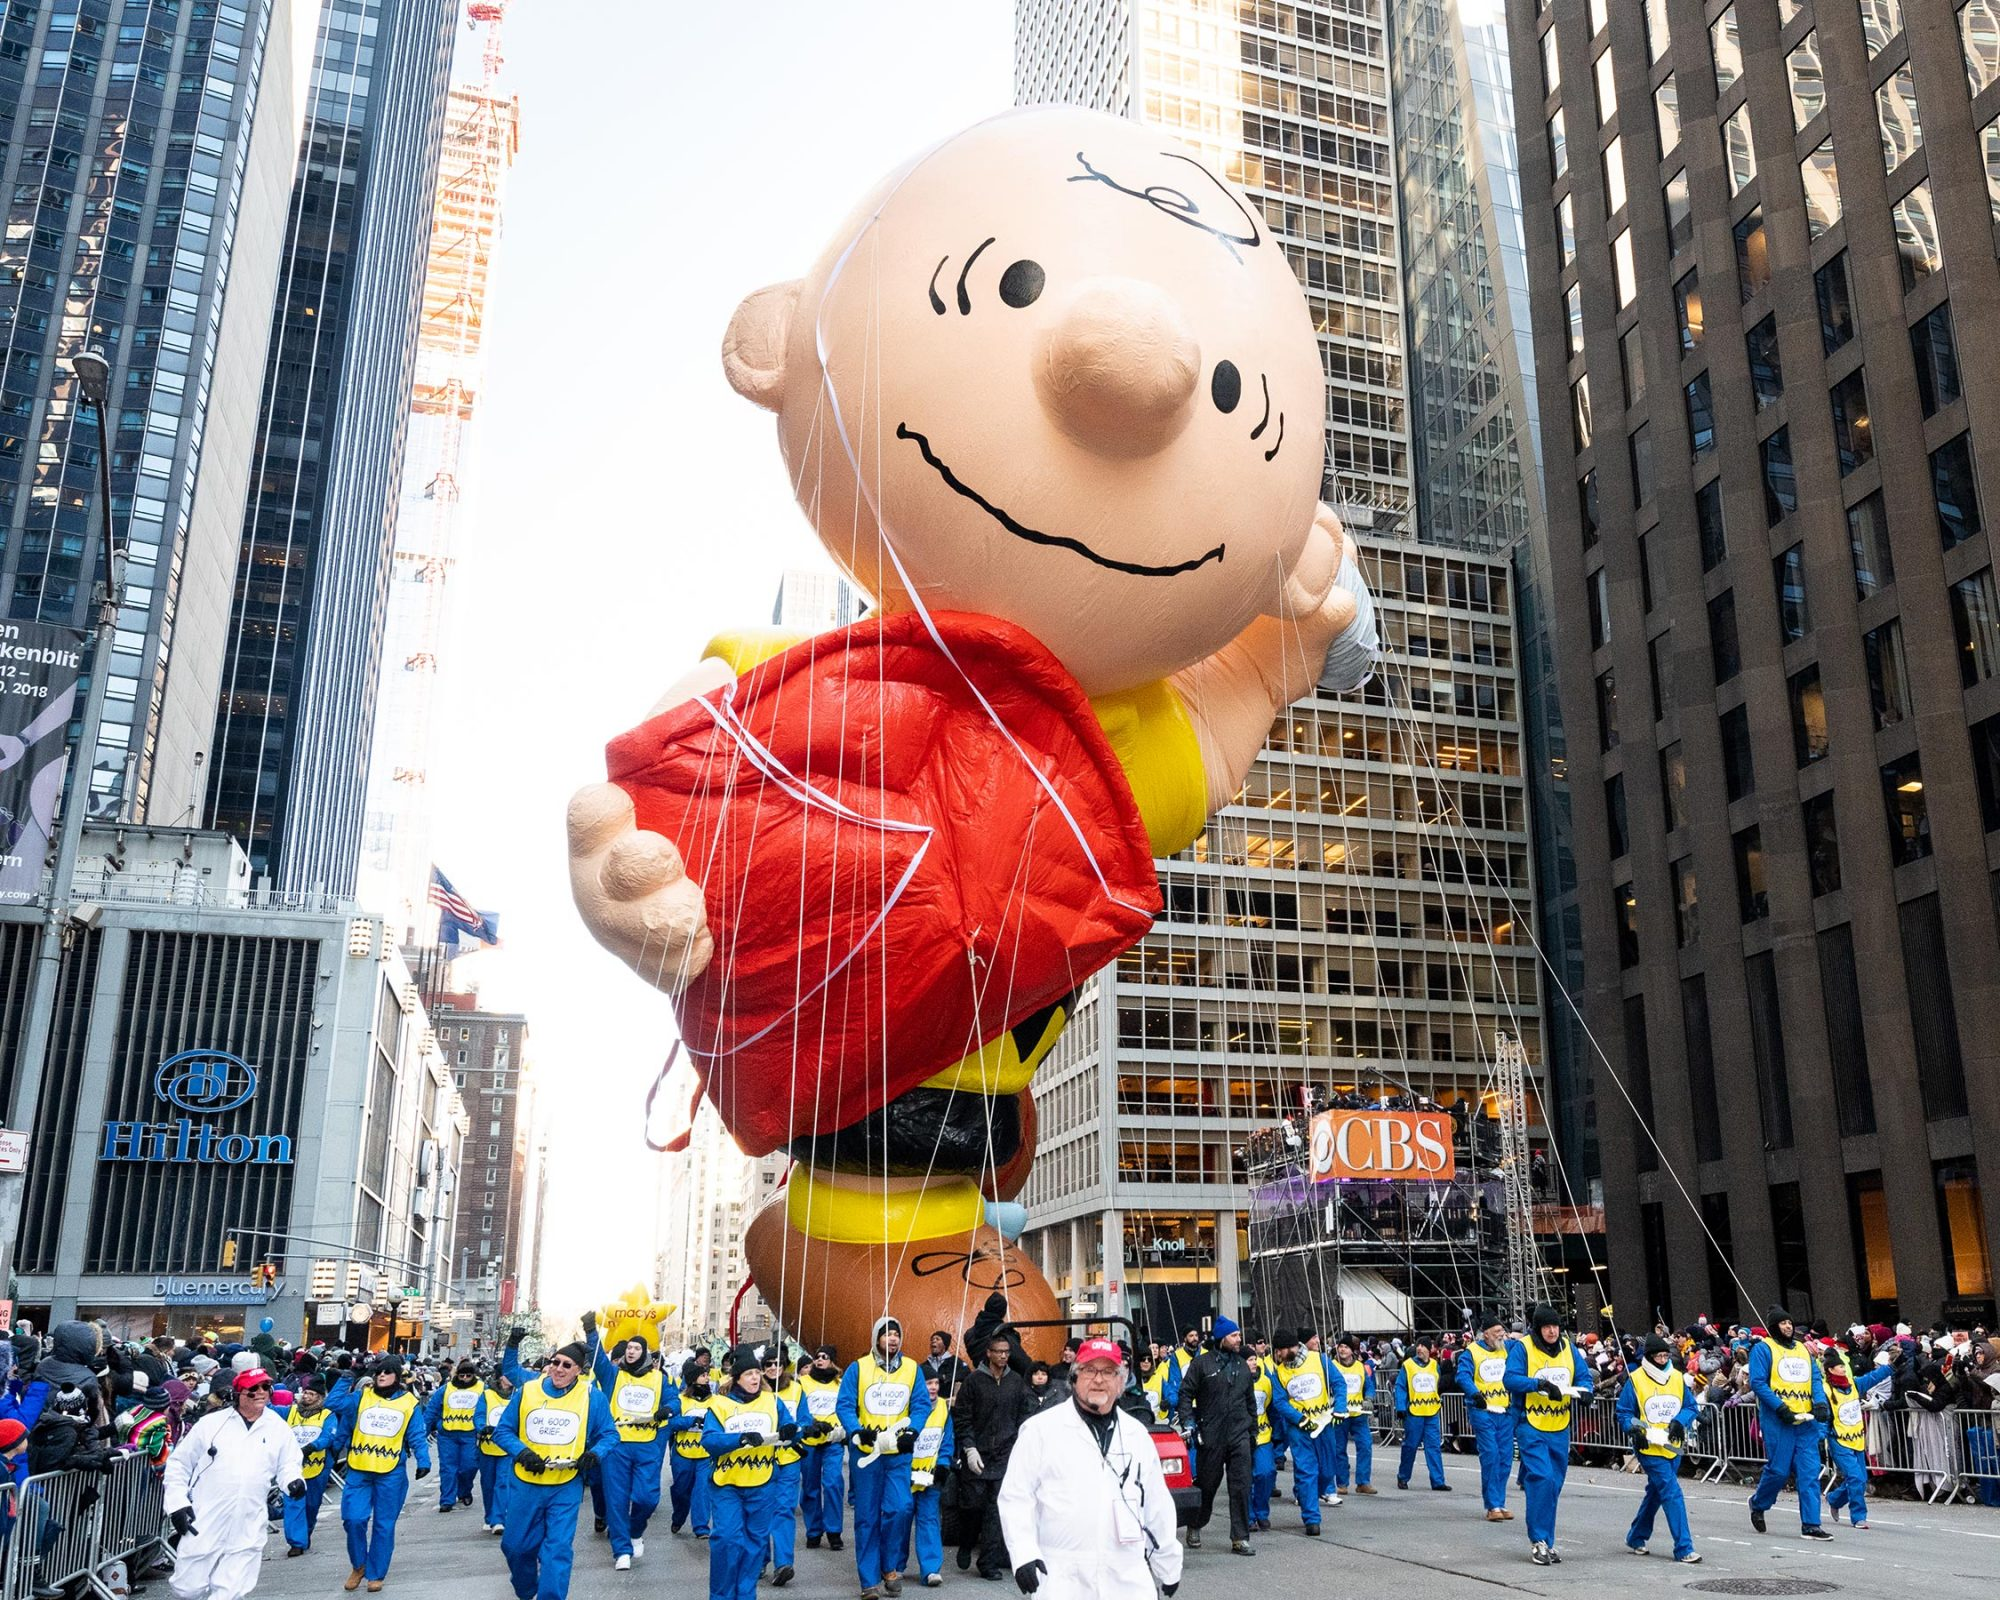 Charlie Brown balloon seen during the 2018 Macy's